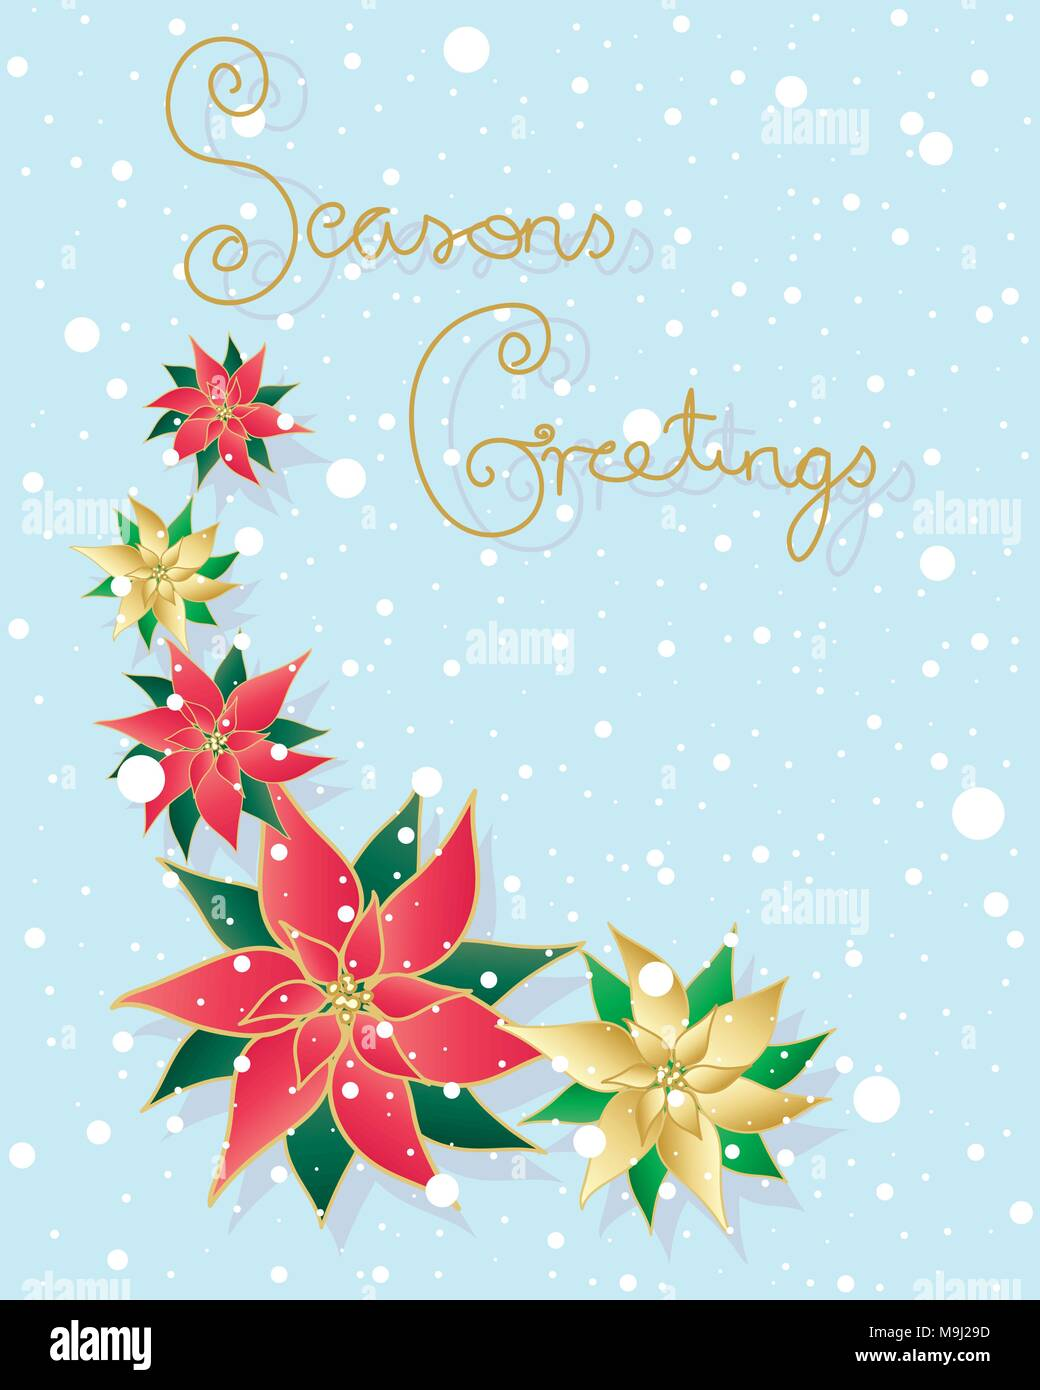 words for christmas cards greeting